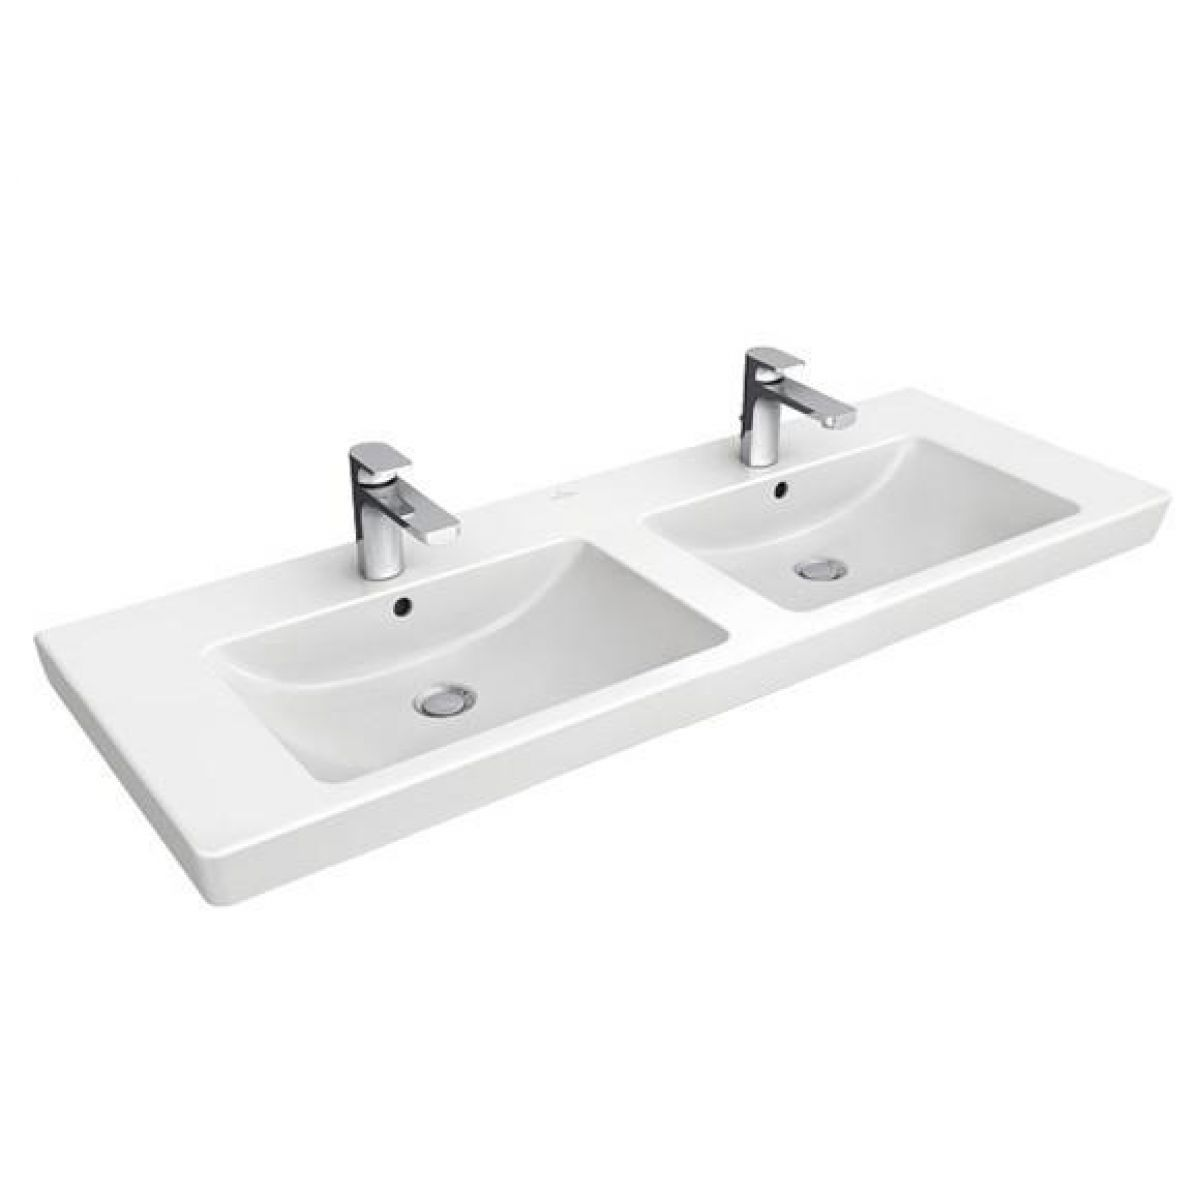 Villeroy & Boch Subway 2.0 Double Vanity Washbasin